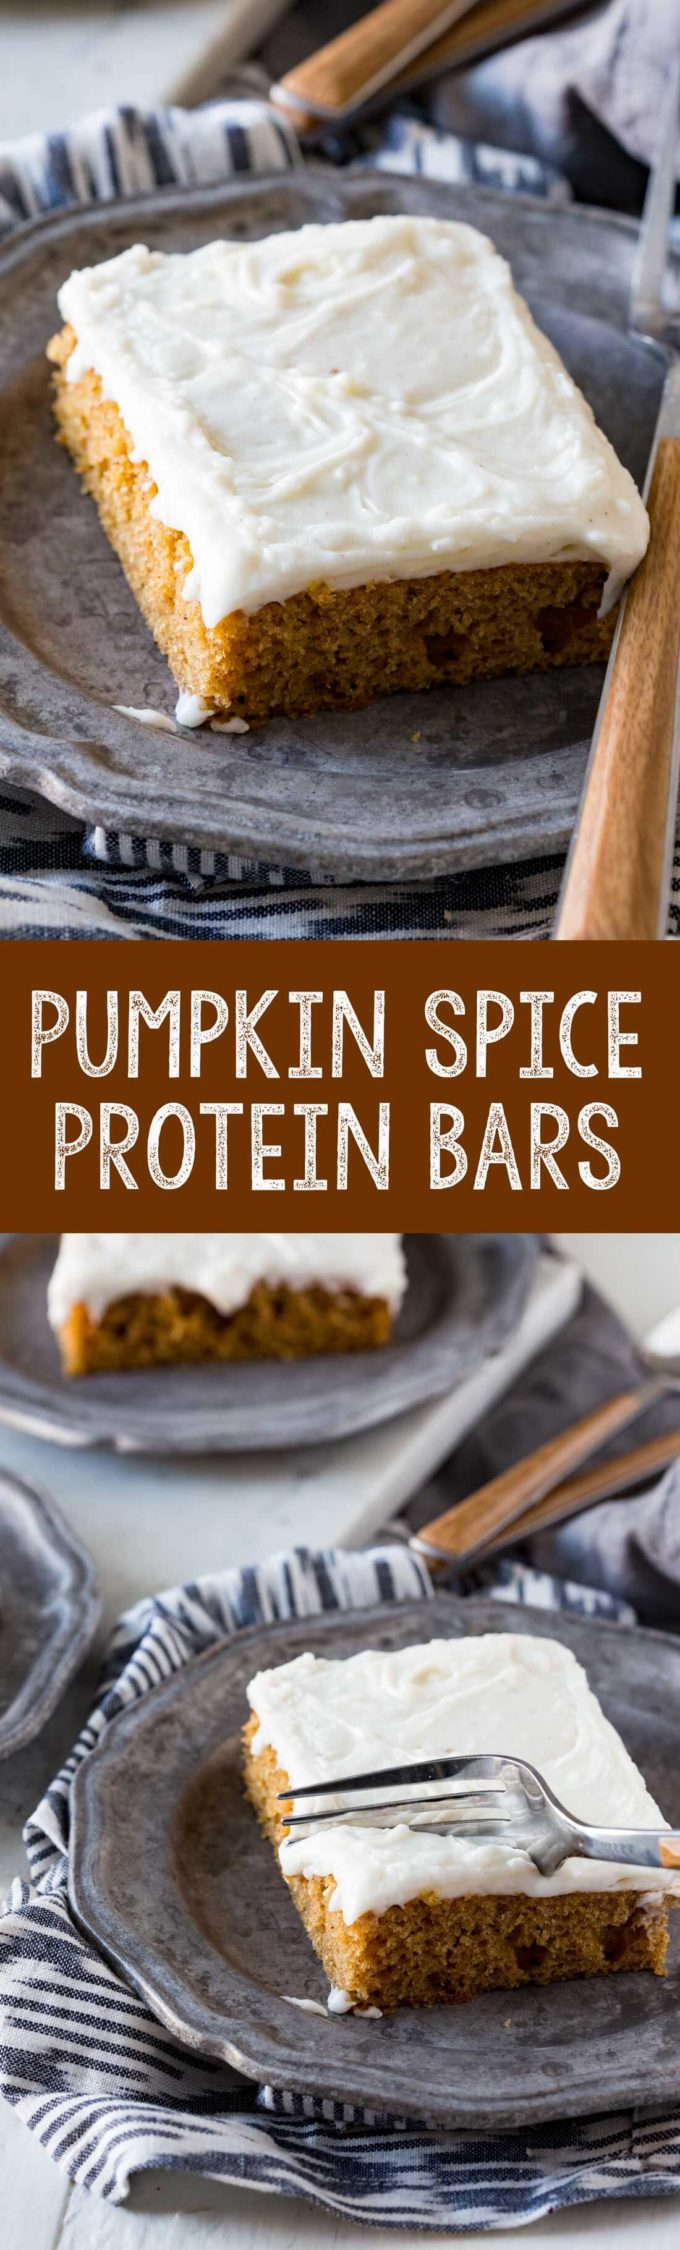 Pumpkin Spice Protein Bars are a fun holiday treat with a healthier protein twist.